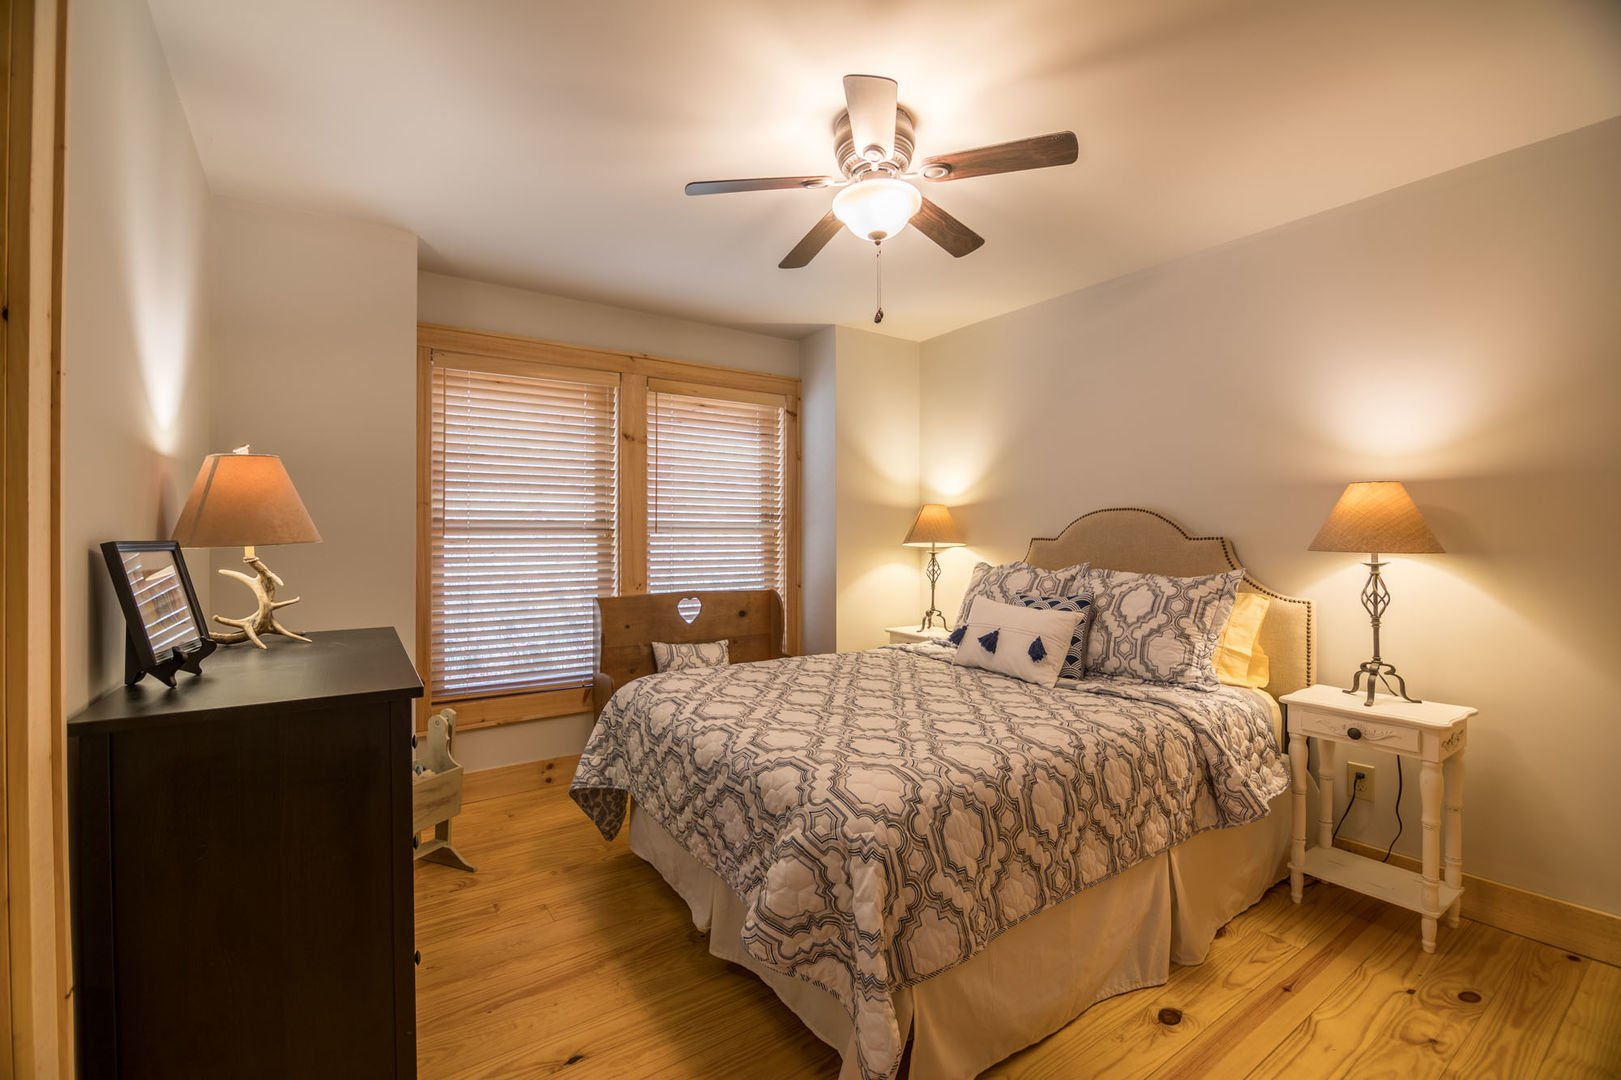 Master bedroom with king sized bed and full bathroom